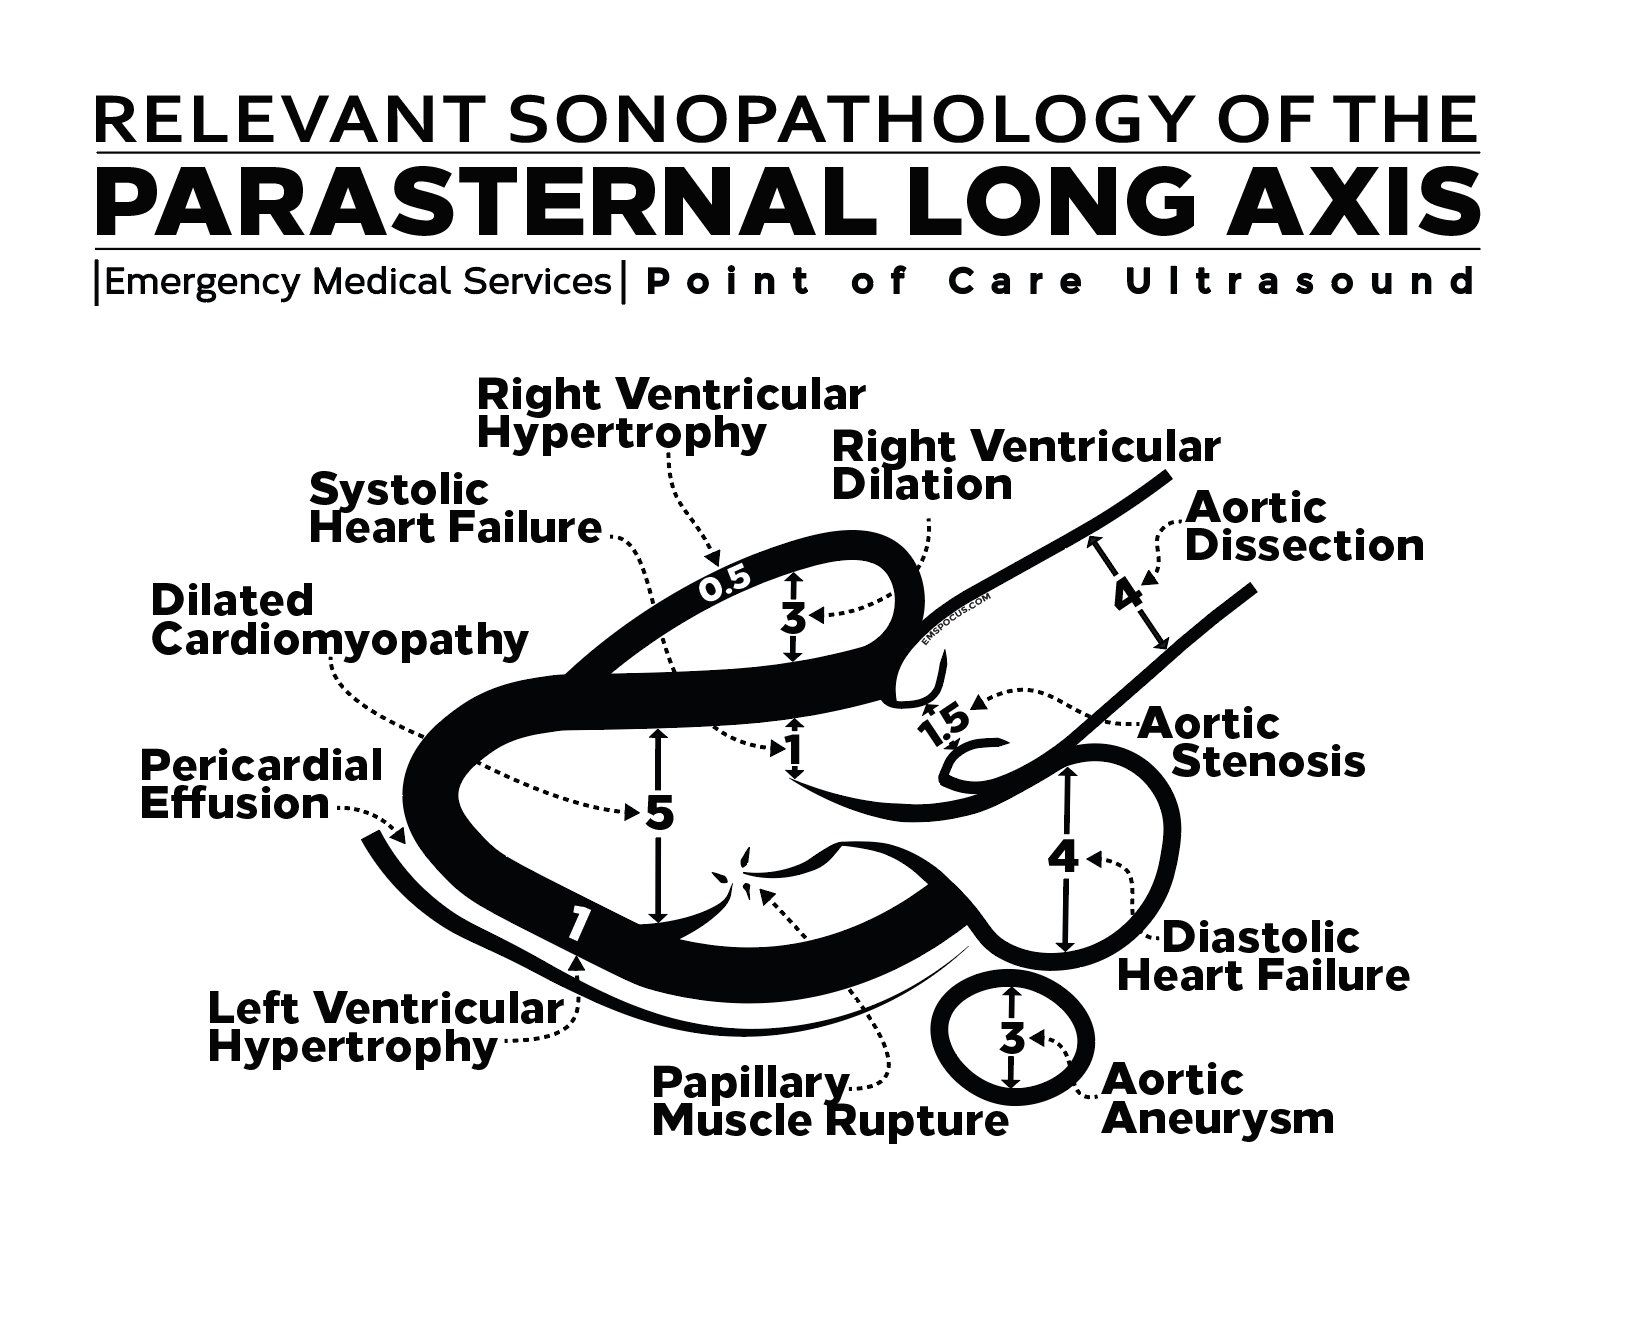 Pin by Brienna Blenkle on study Cardiac sonography